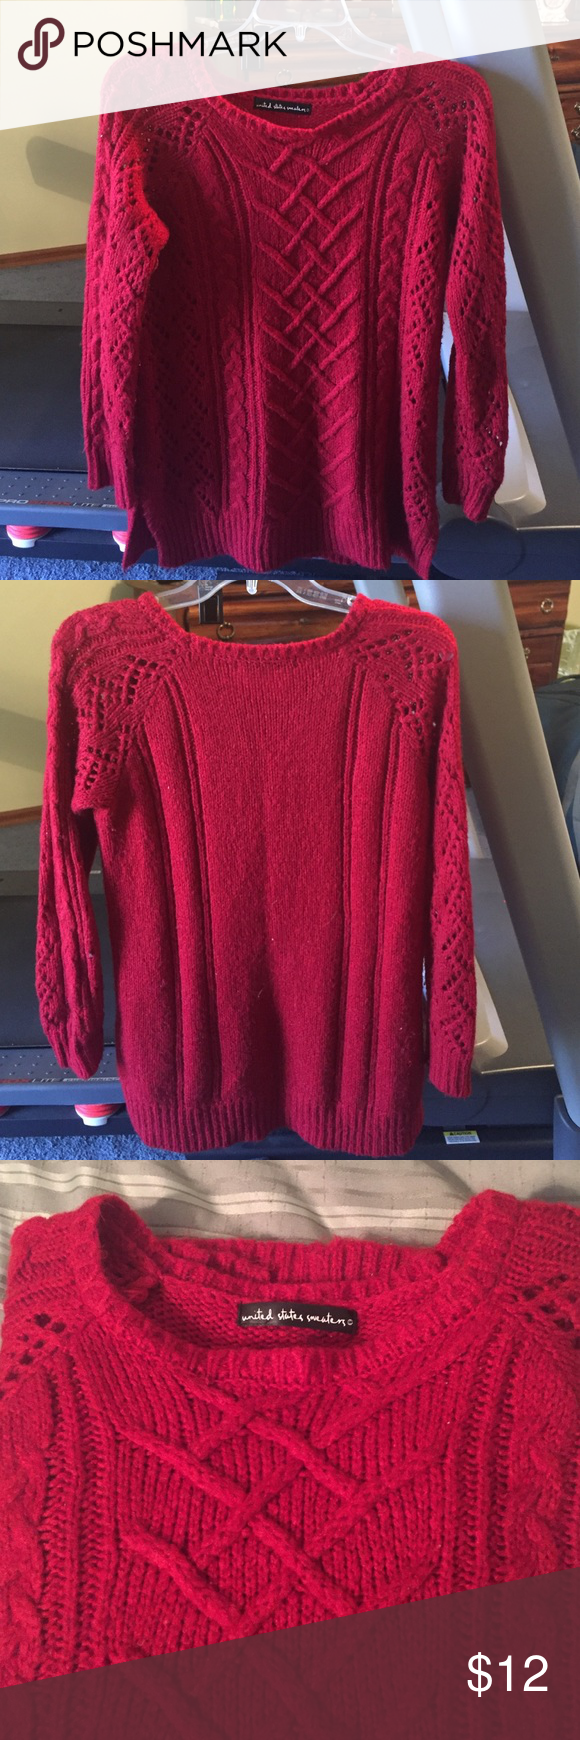 Red sweater Soft and warm , tunic length sweater. Bought from Boutique united states sweaters Sweaters Crew & Scoop Necks